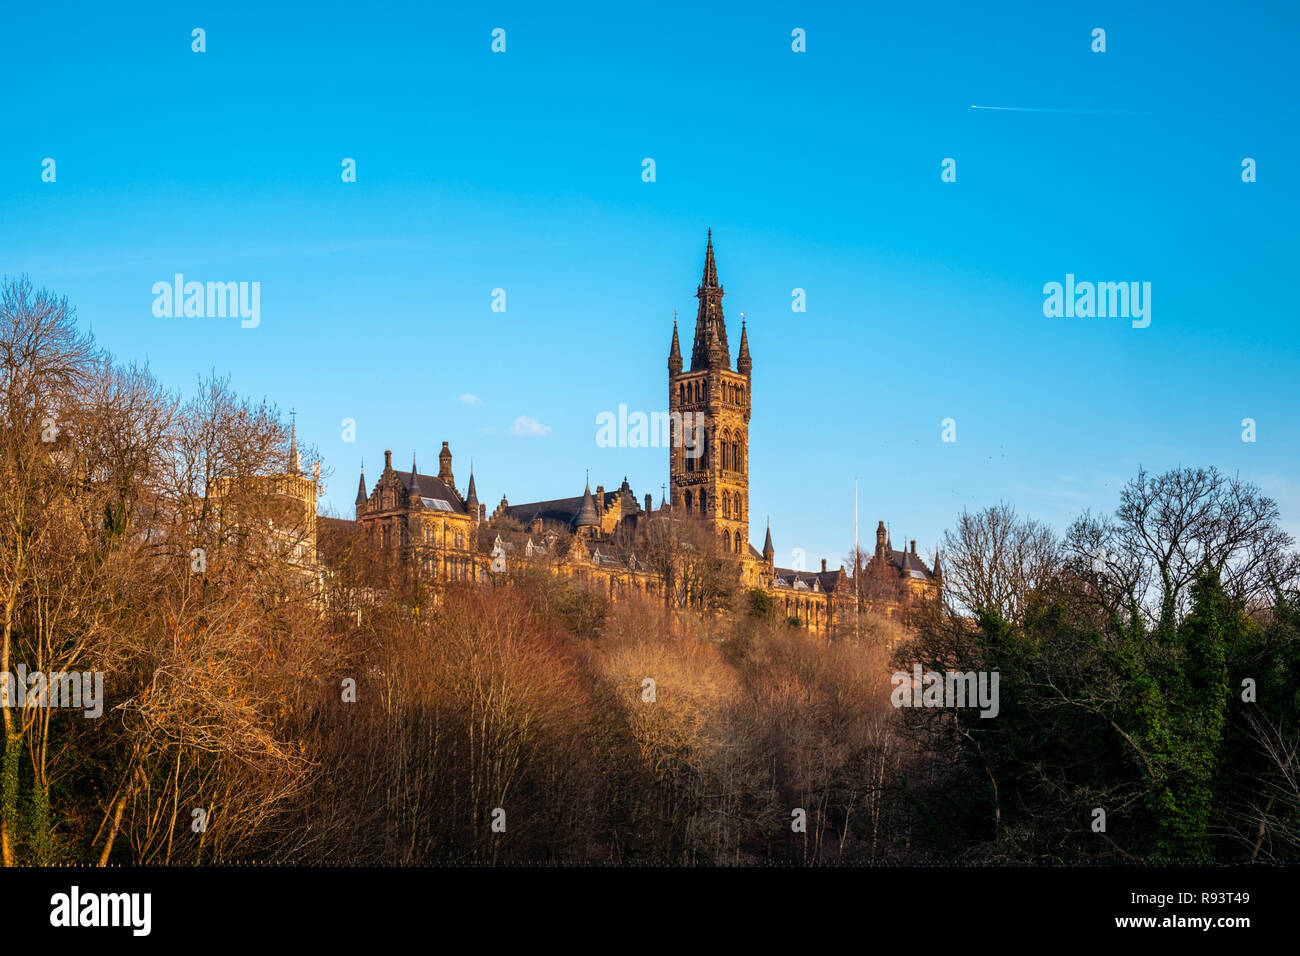 Looking through the trees to the majestic towers of the university of Glasgow in late afternoon sun. - Stock Image